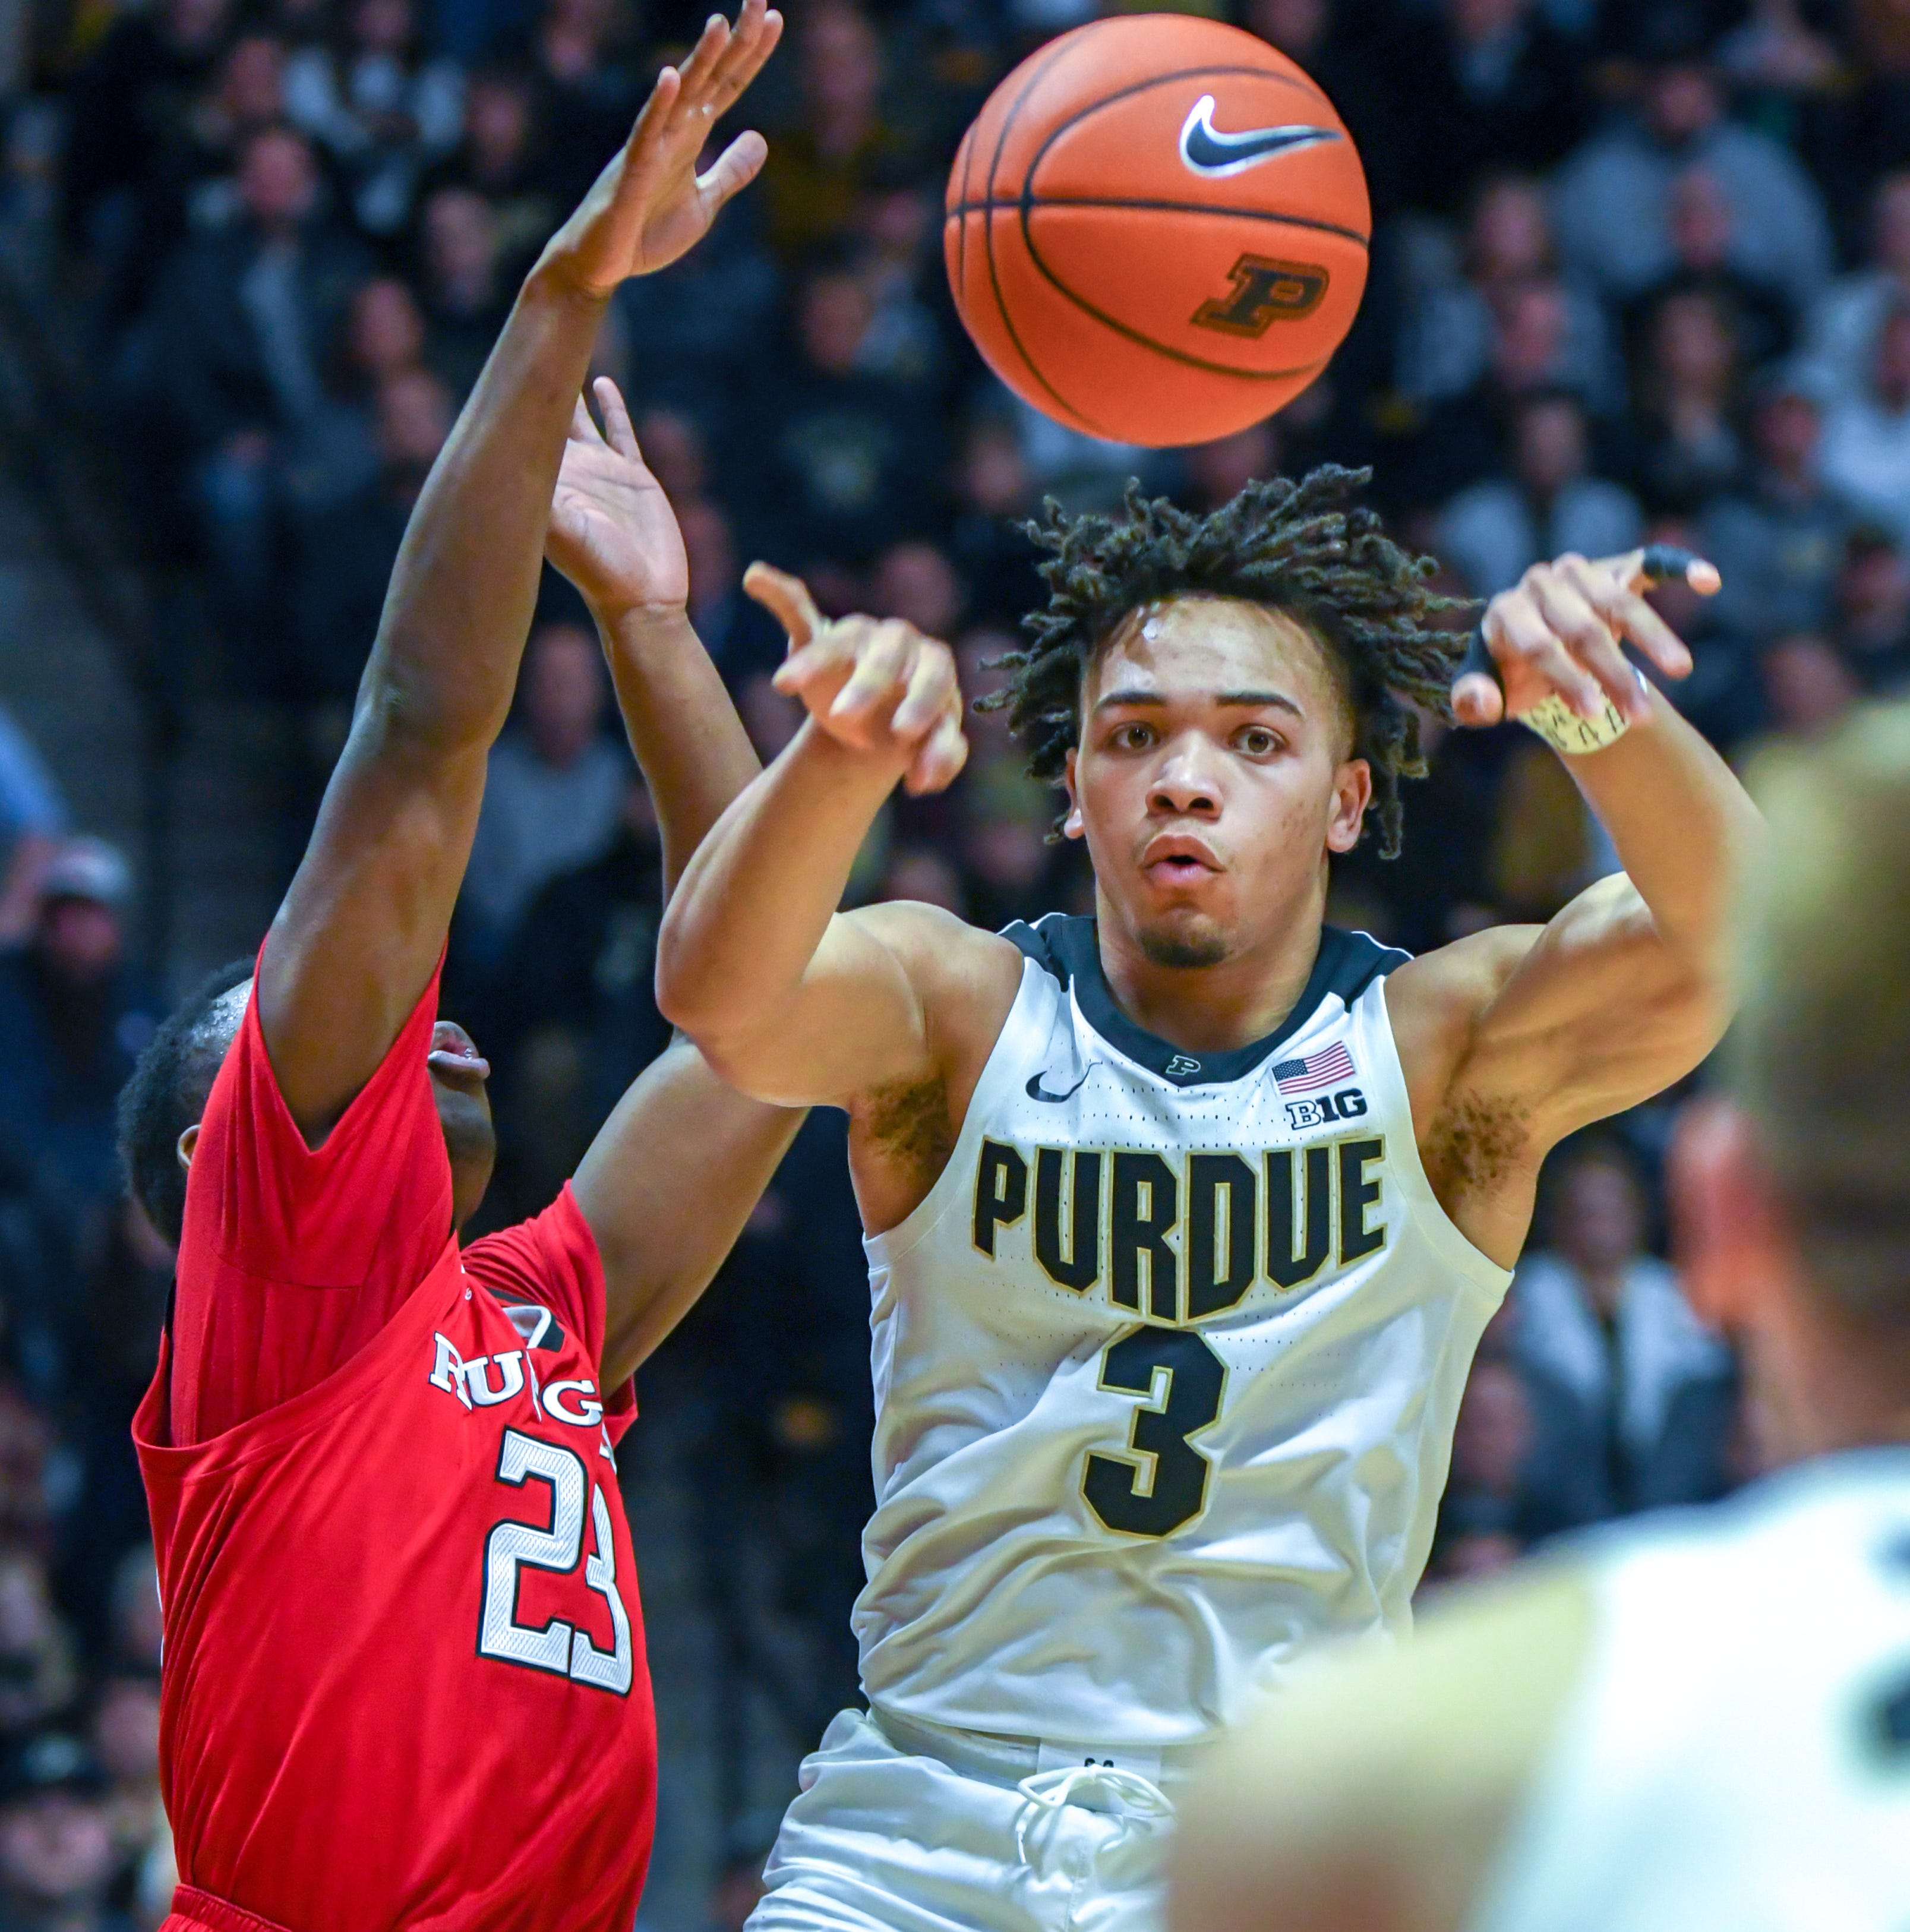 Purdue basketball win over Rutgers provided best look yet at Carsen Edwards as catalyst